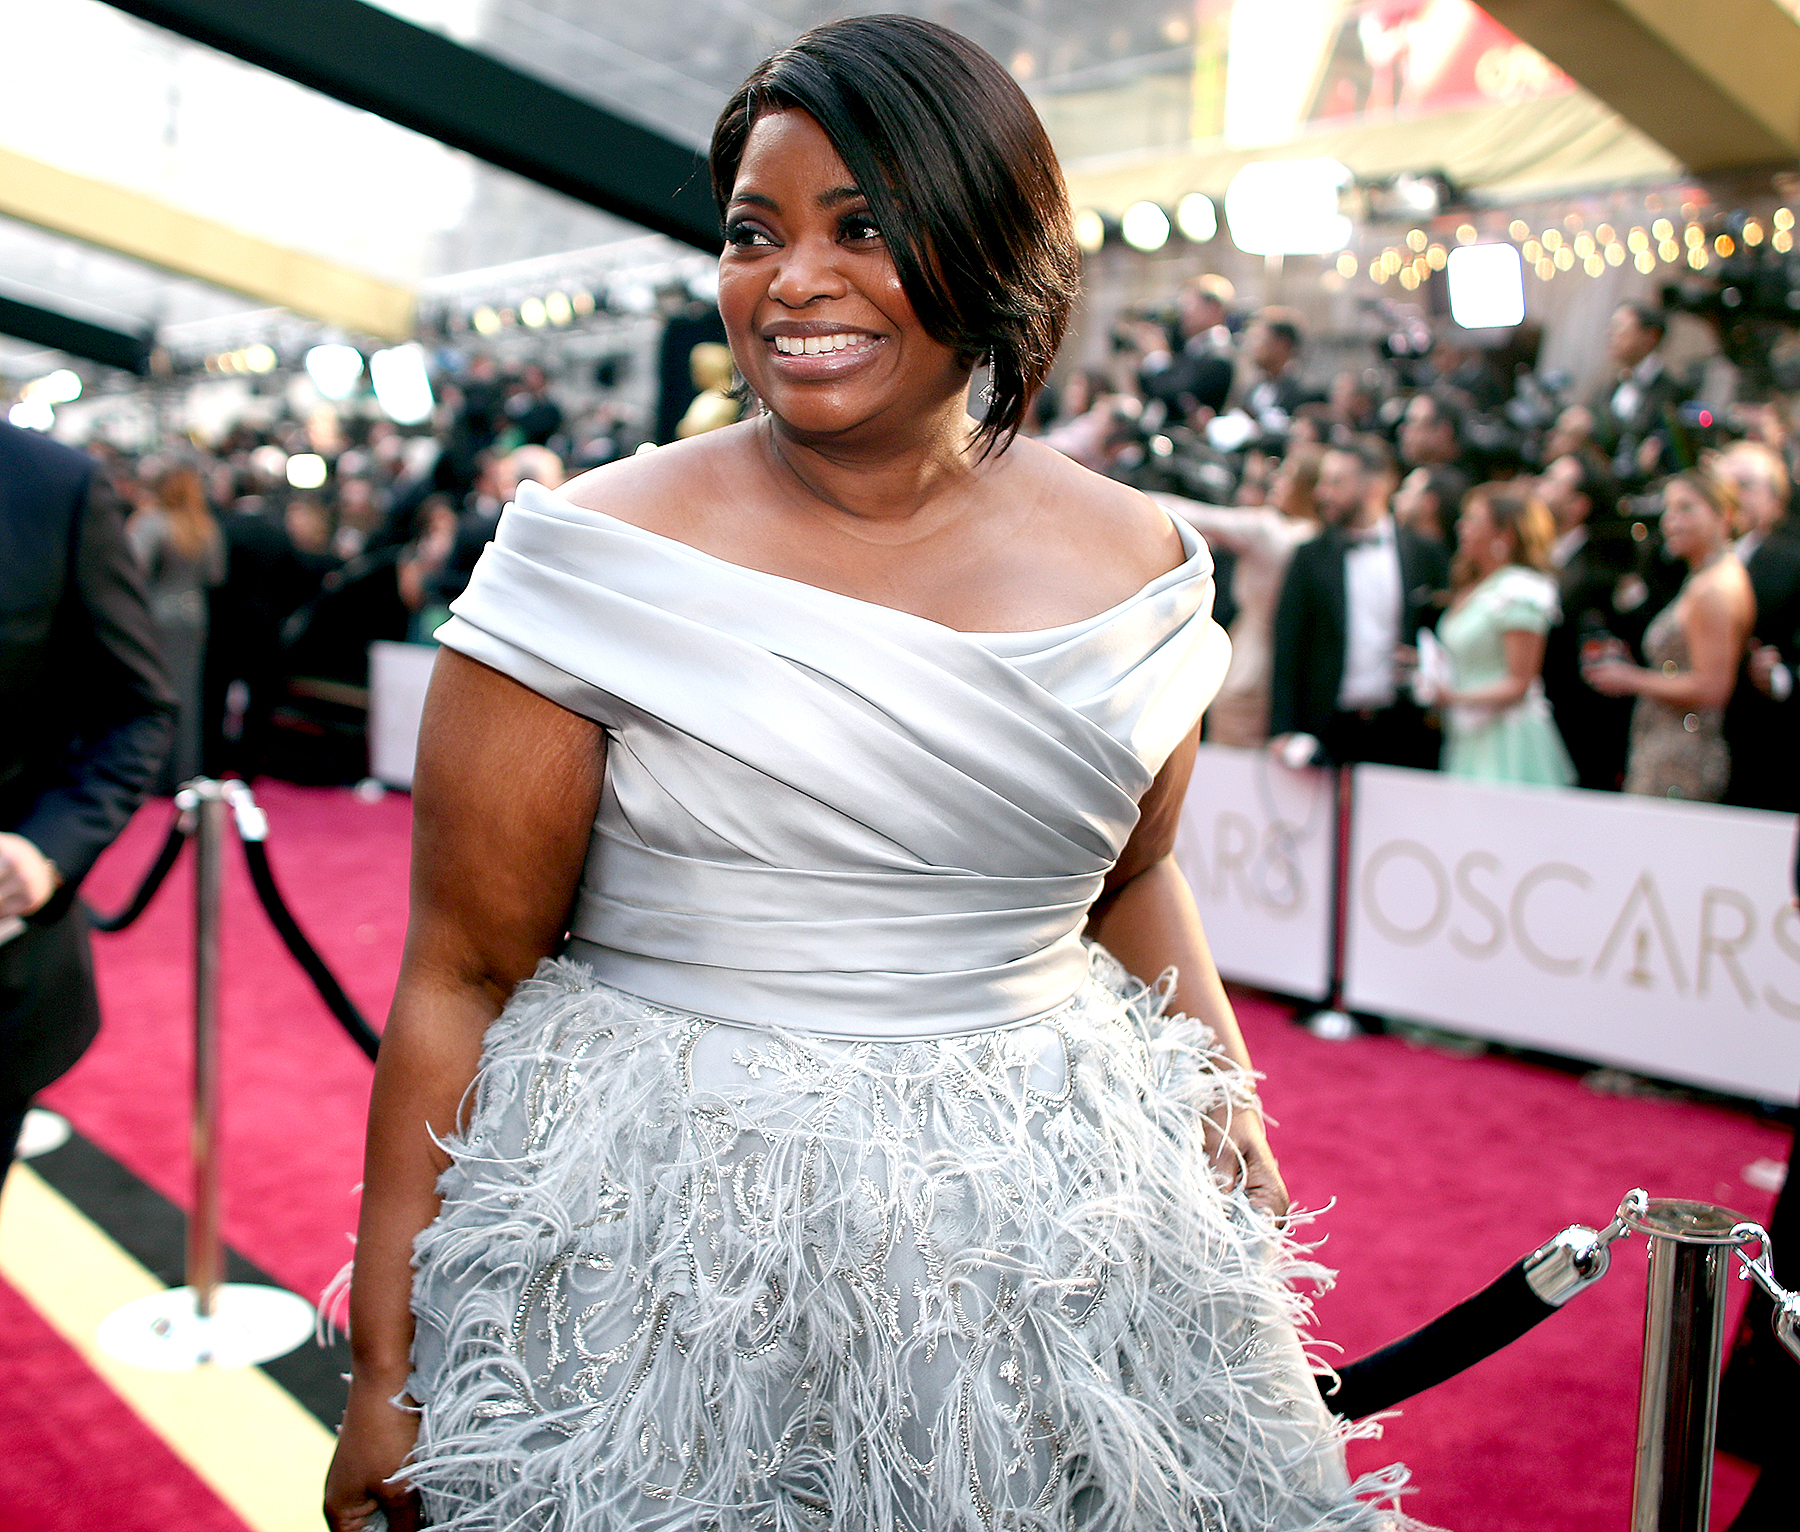 Octavia Spencer attends the 89th Annual Academy Awards at Hollywood & Highland Center on February 26, 2017 in Hollywood, California.